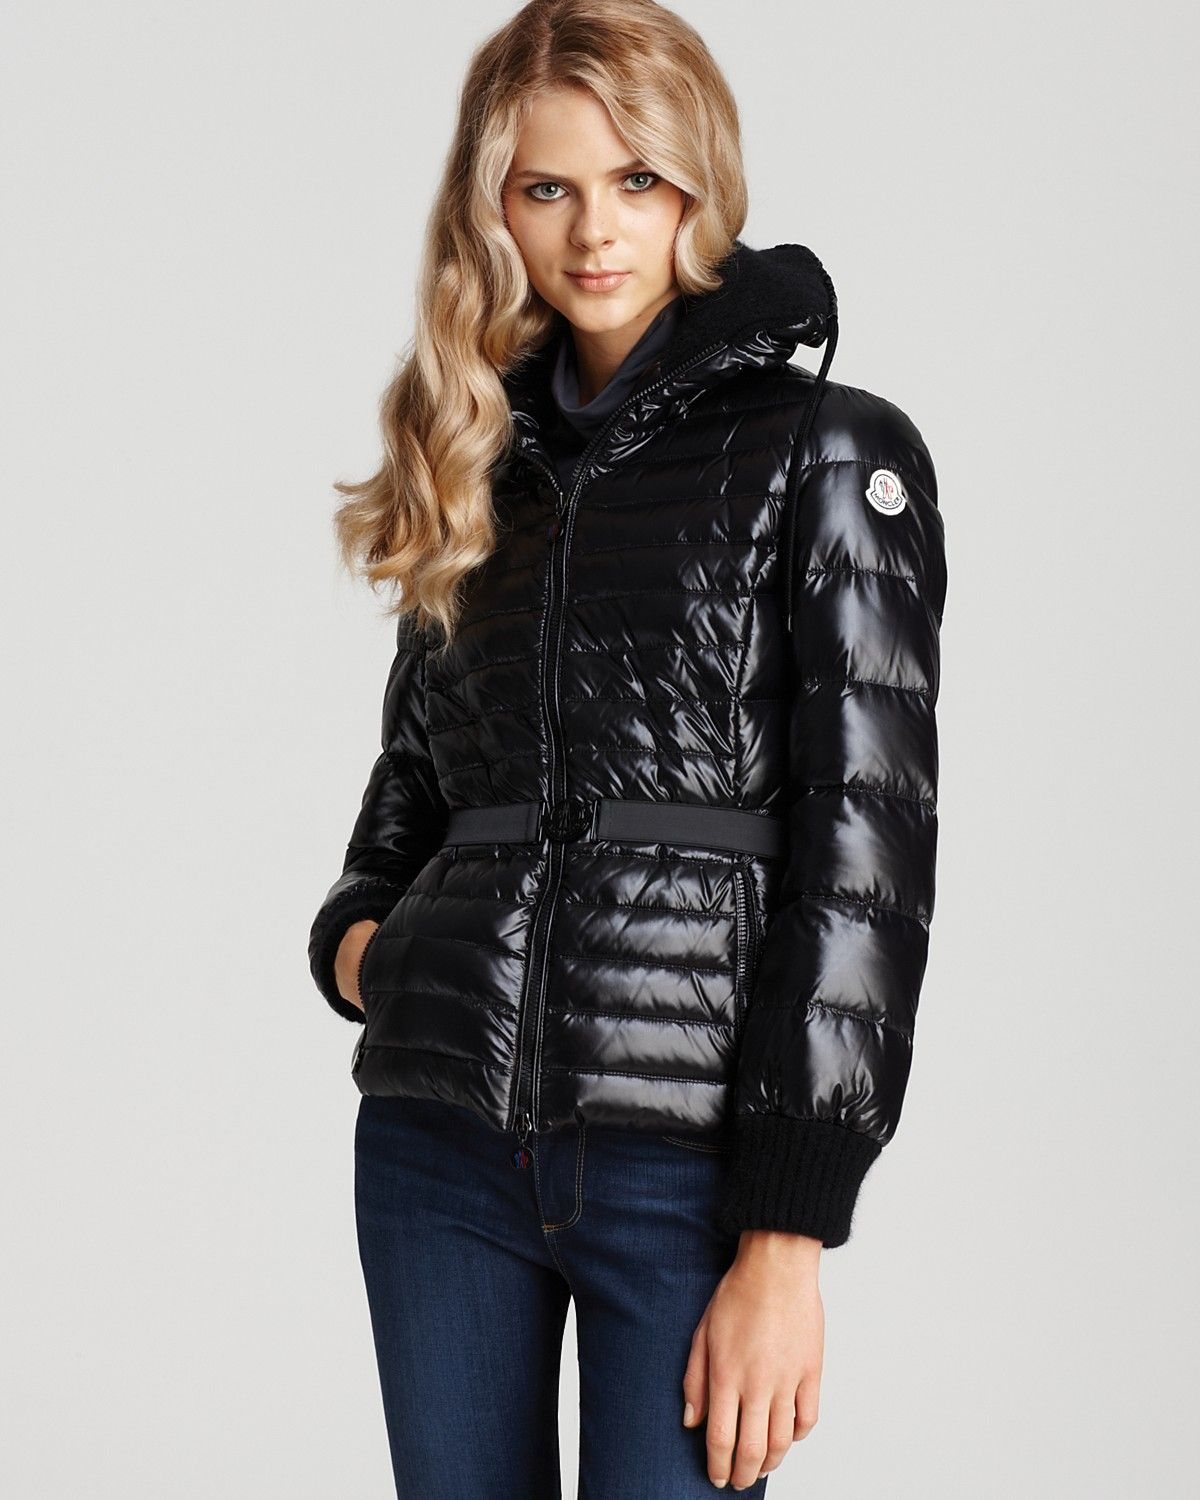 Moncler Belted Down Jacket With Knit Detail Oooh Down Jacket Womens Casual Outfits Jackets [ 1500 x 1200 Pixel ]